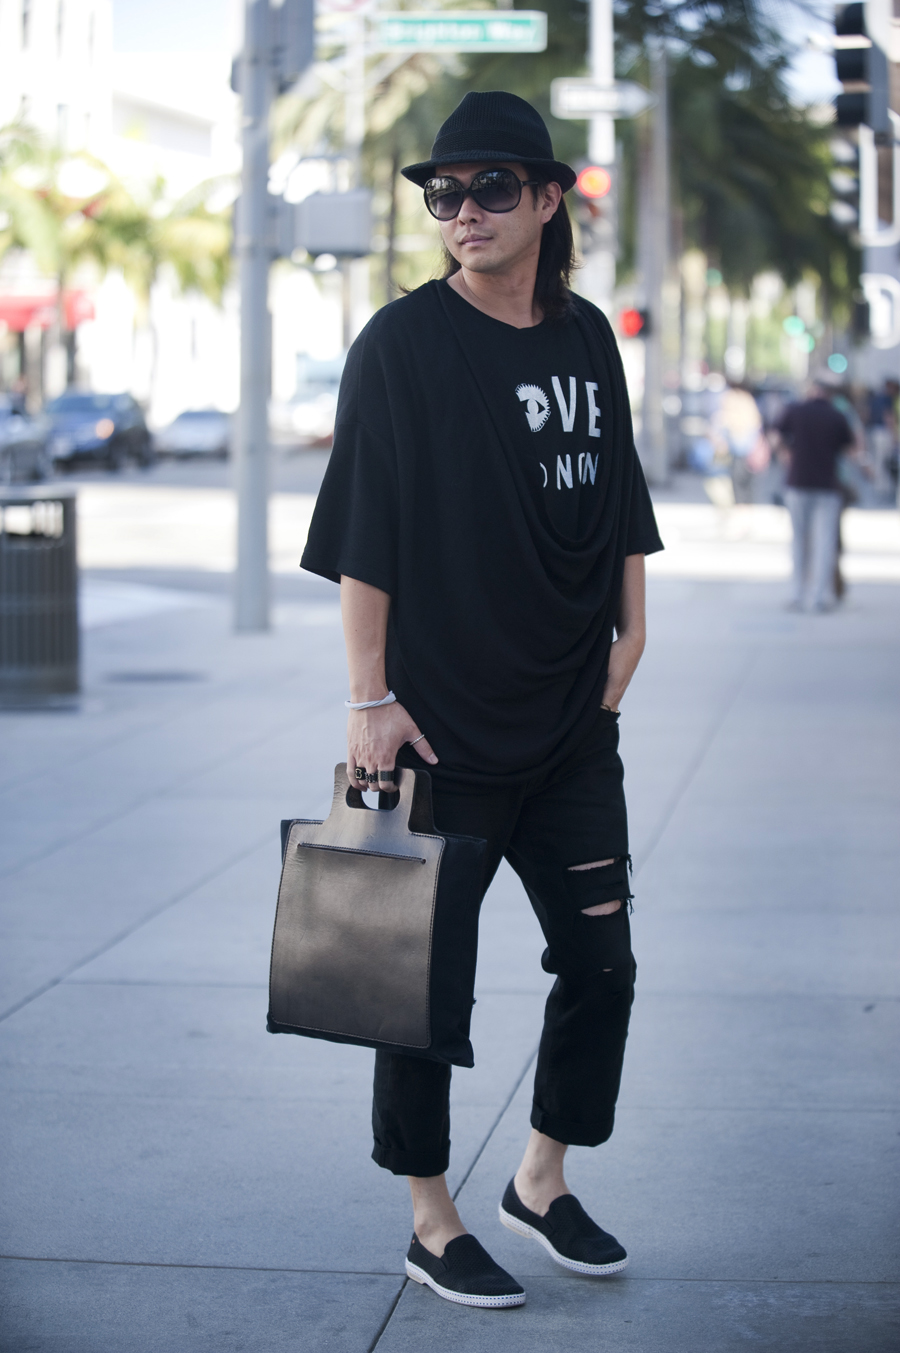 Tomo Iwanami, 34, wears a Libertine t-shirt and a bag from Junhashimoto.